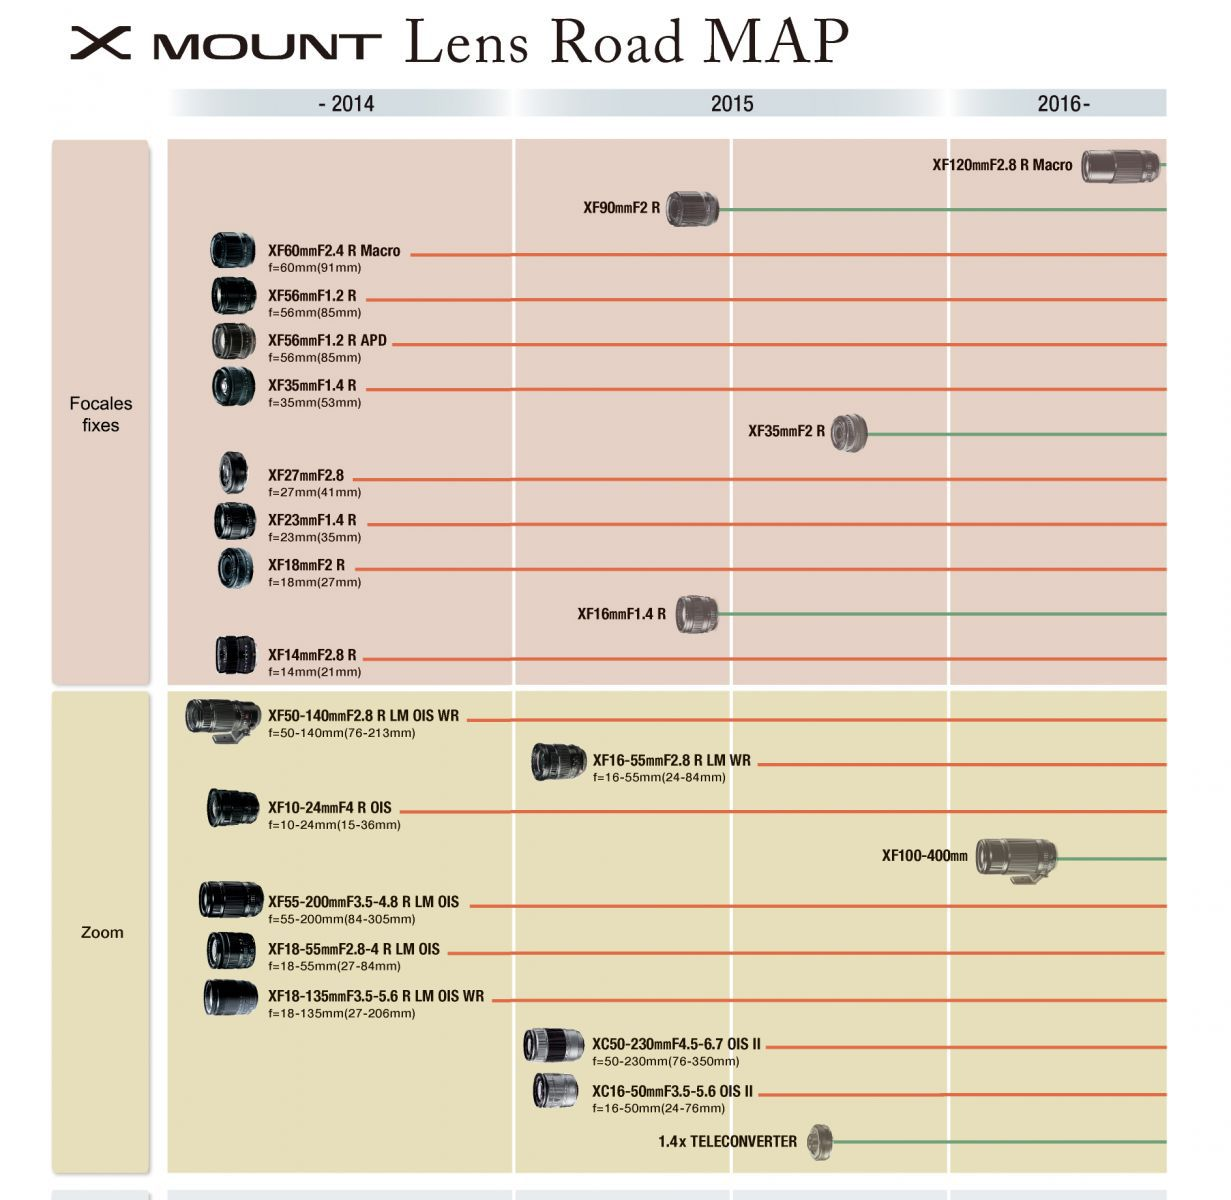 Lens Road Map (feuille de route optique) Fujifilm 2015 Monture X